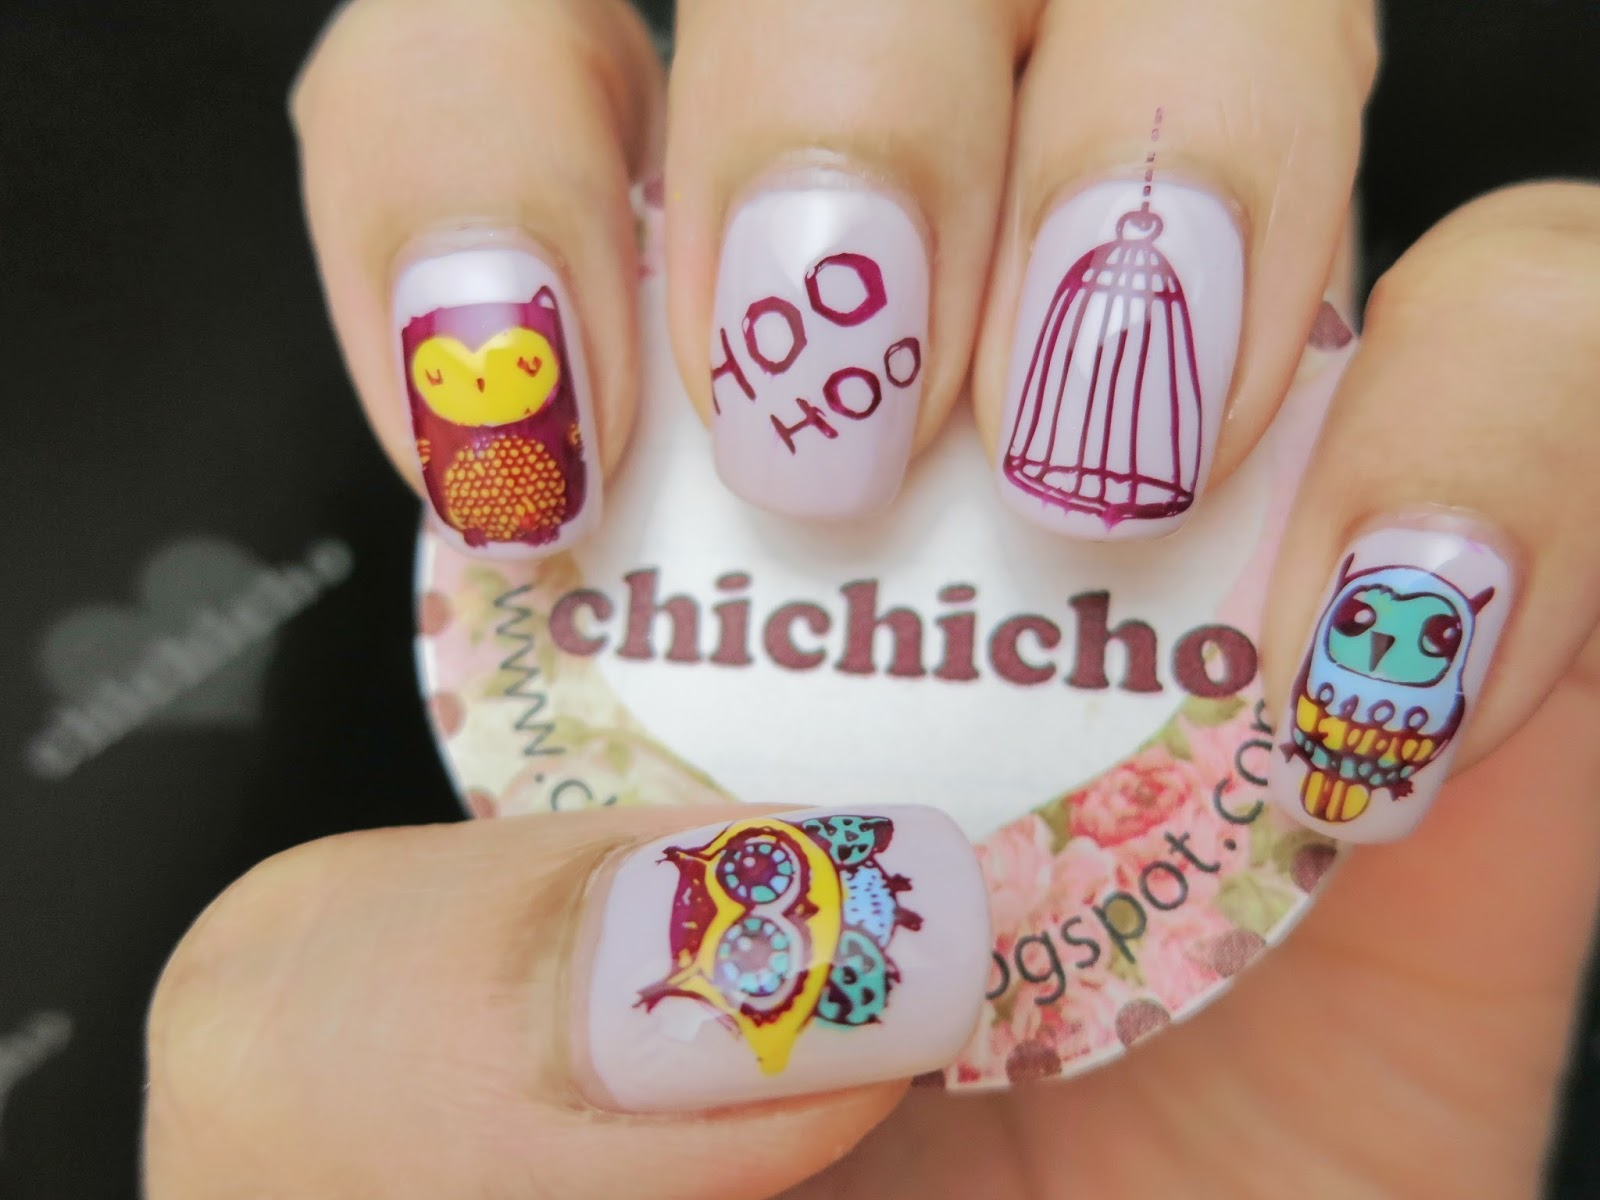 Owls Nail Art with Image Plate Qgirl036 - chichicho~